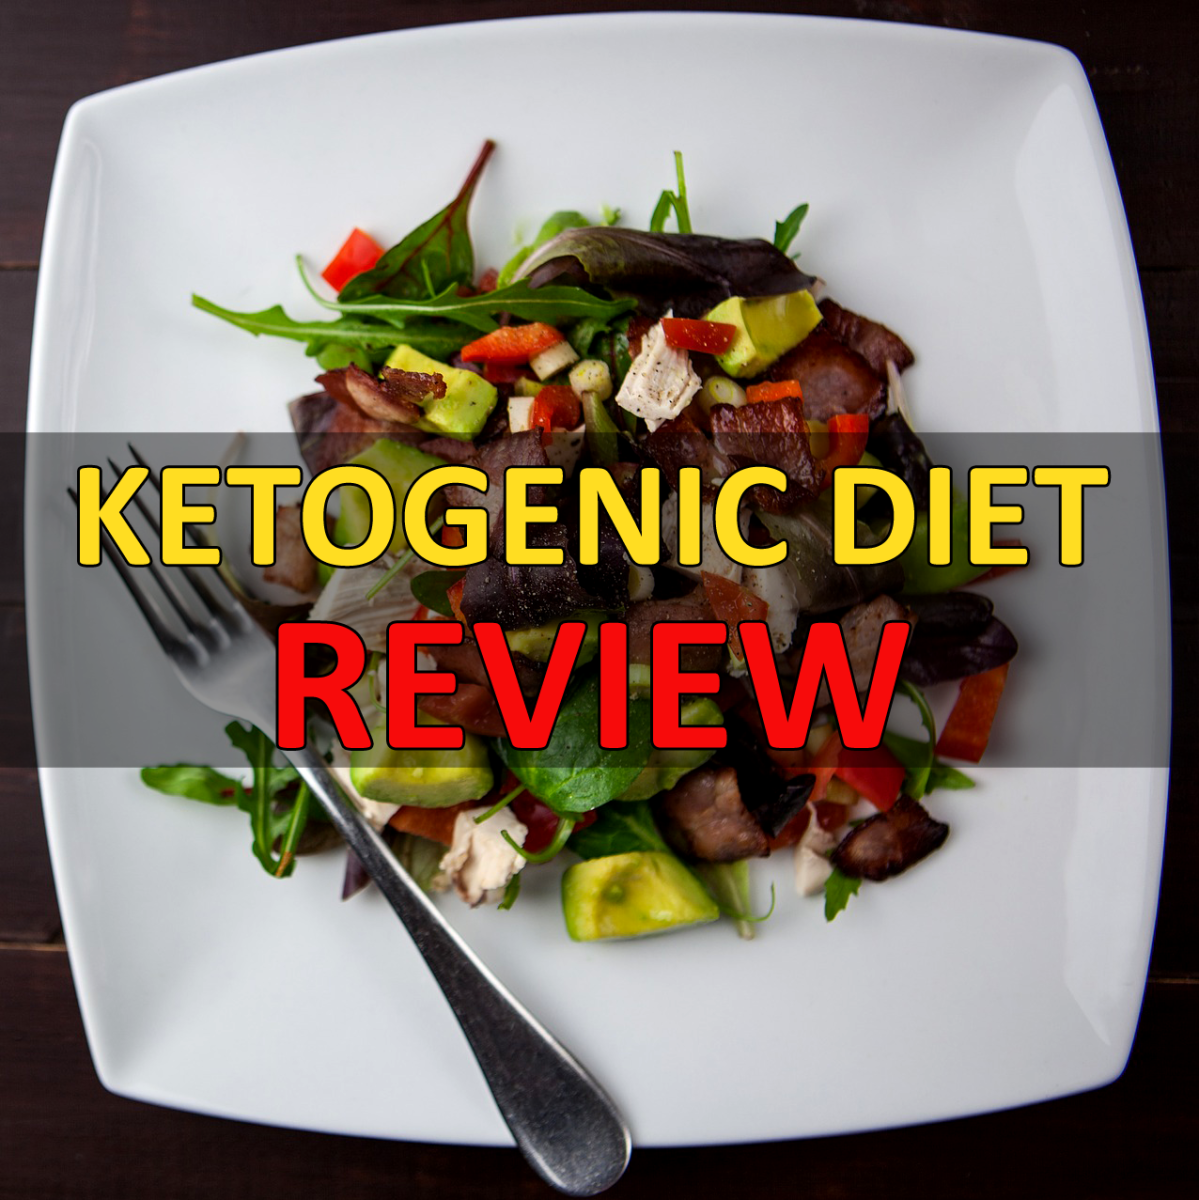 I Tried the Ketogenic Diet for Seven Months - Here's What Happened